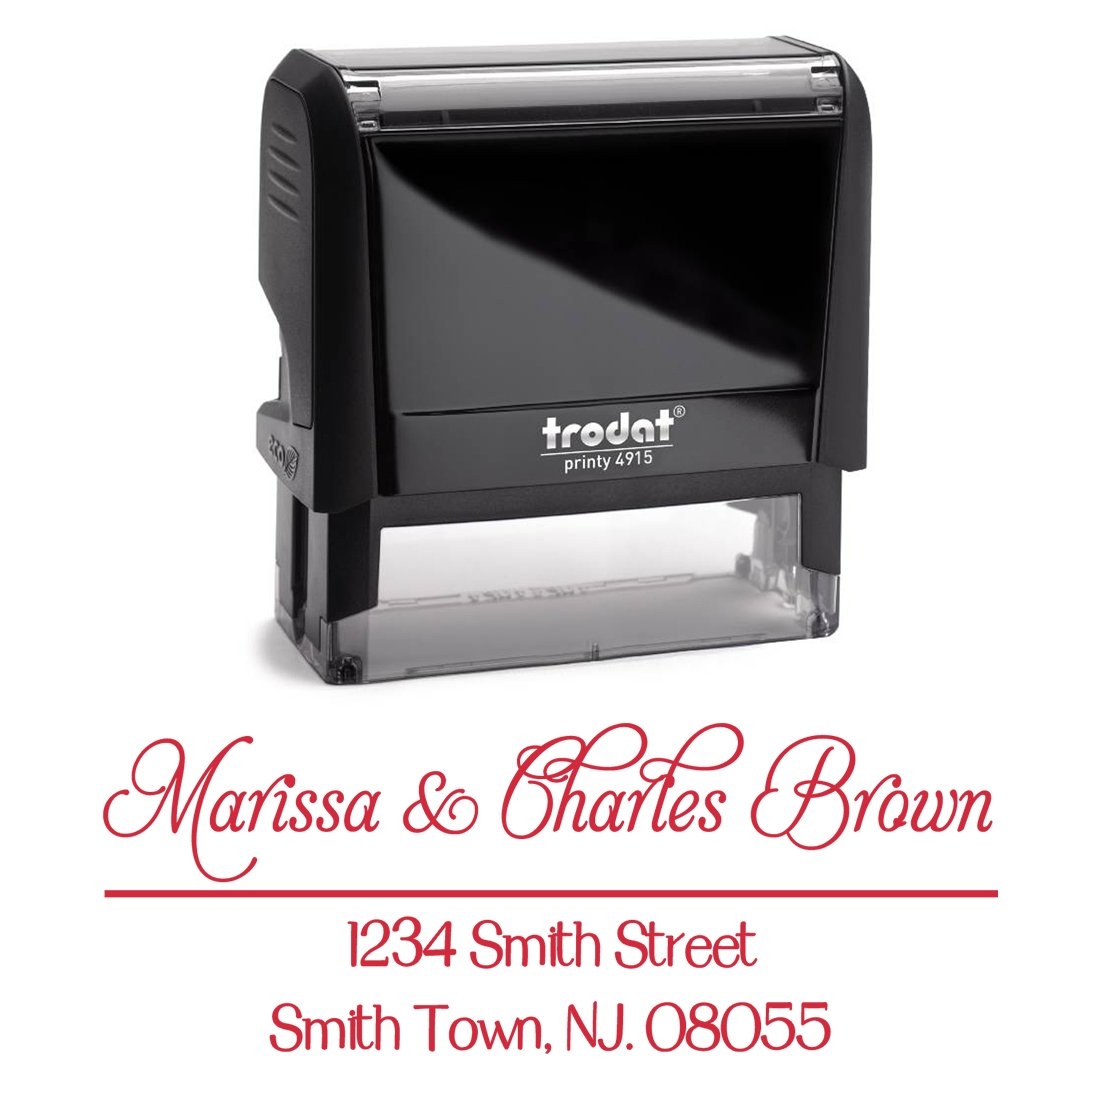 Red Ink, Personalized Custom Self Inking Return Address Stamp – Business Office Mail Stampers – Brilliant Gift for Real Estate Clients, Newlyweds, Family, Wedding or Housewarming